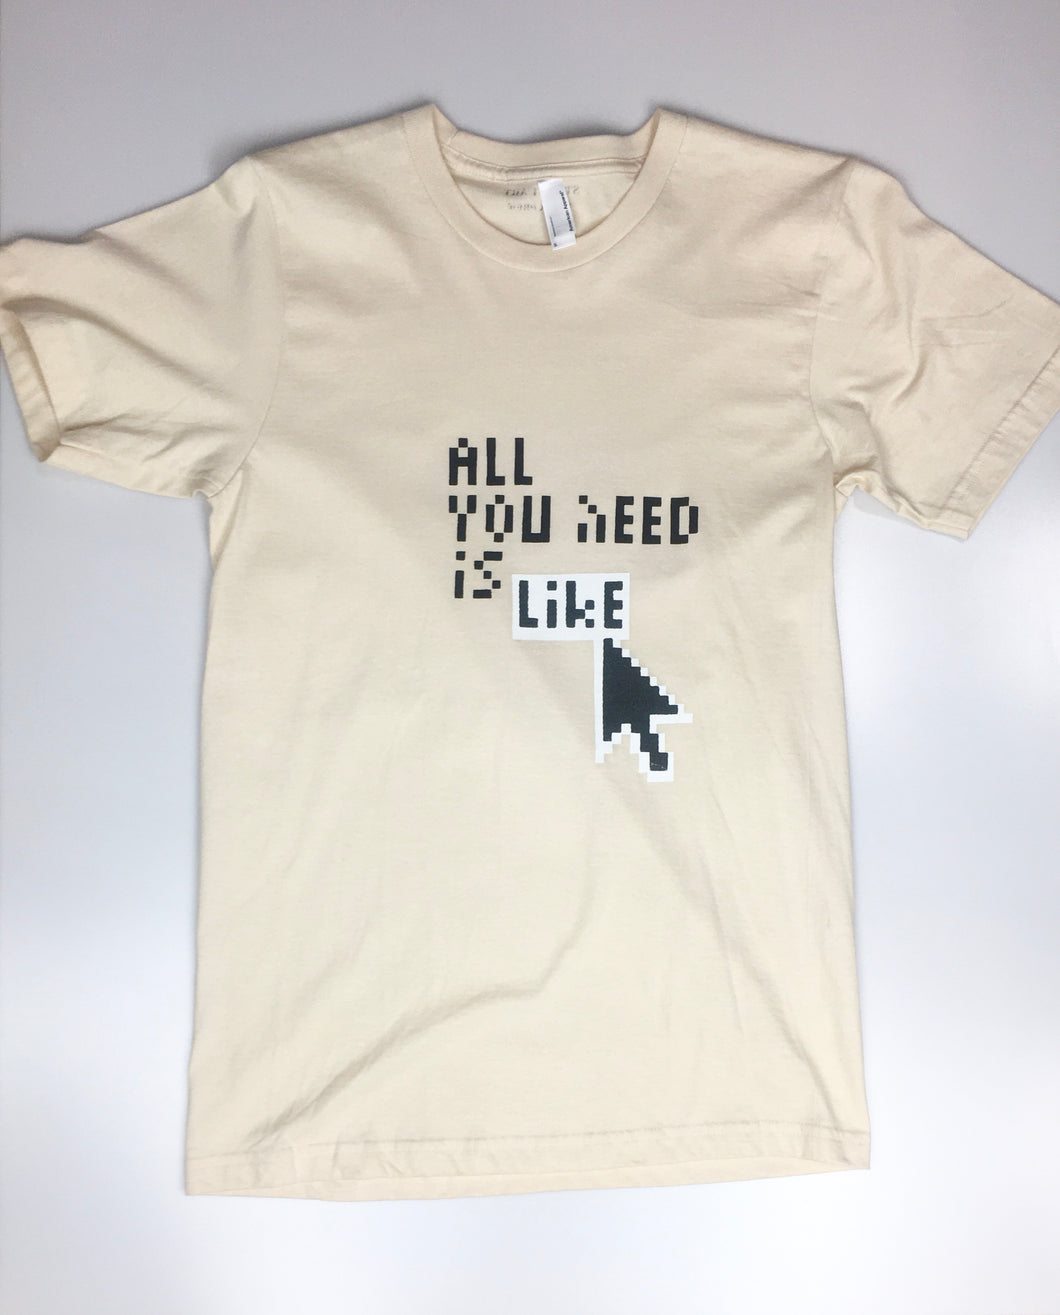 Unisex 'All You Need is Like' T-shirt